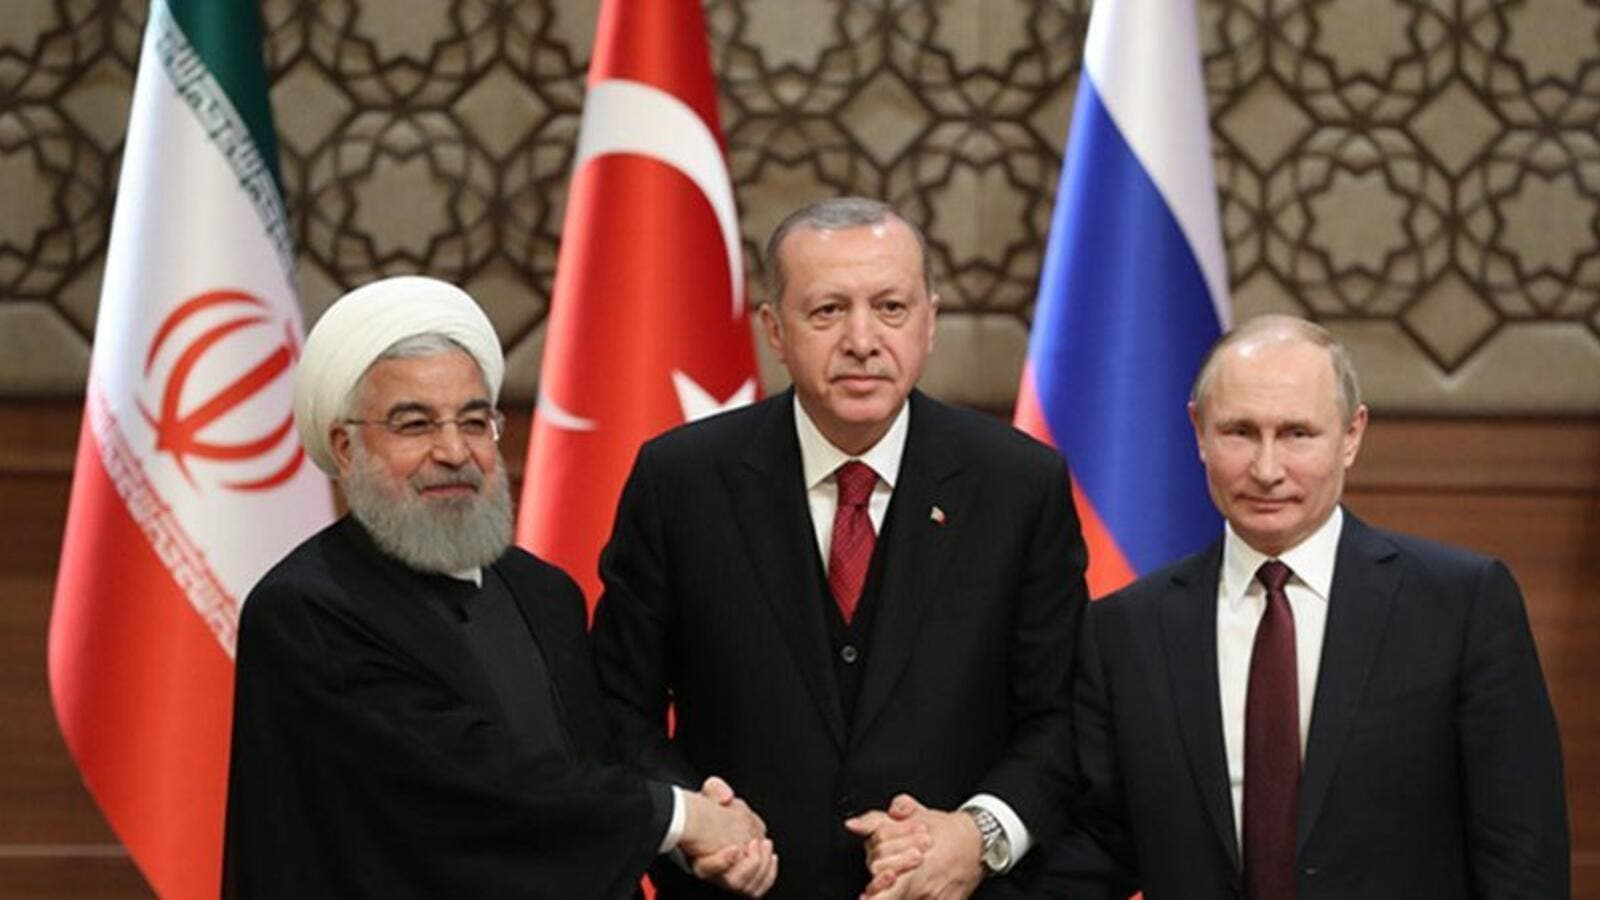 Russia, Turkey, Iran agree to continue joint efforts on facilitating work of Syria's constitutional committee (Twitter)